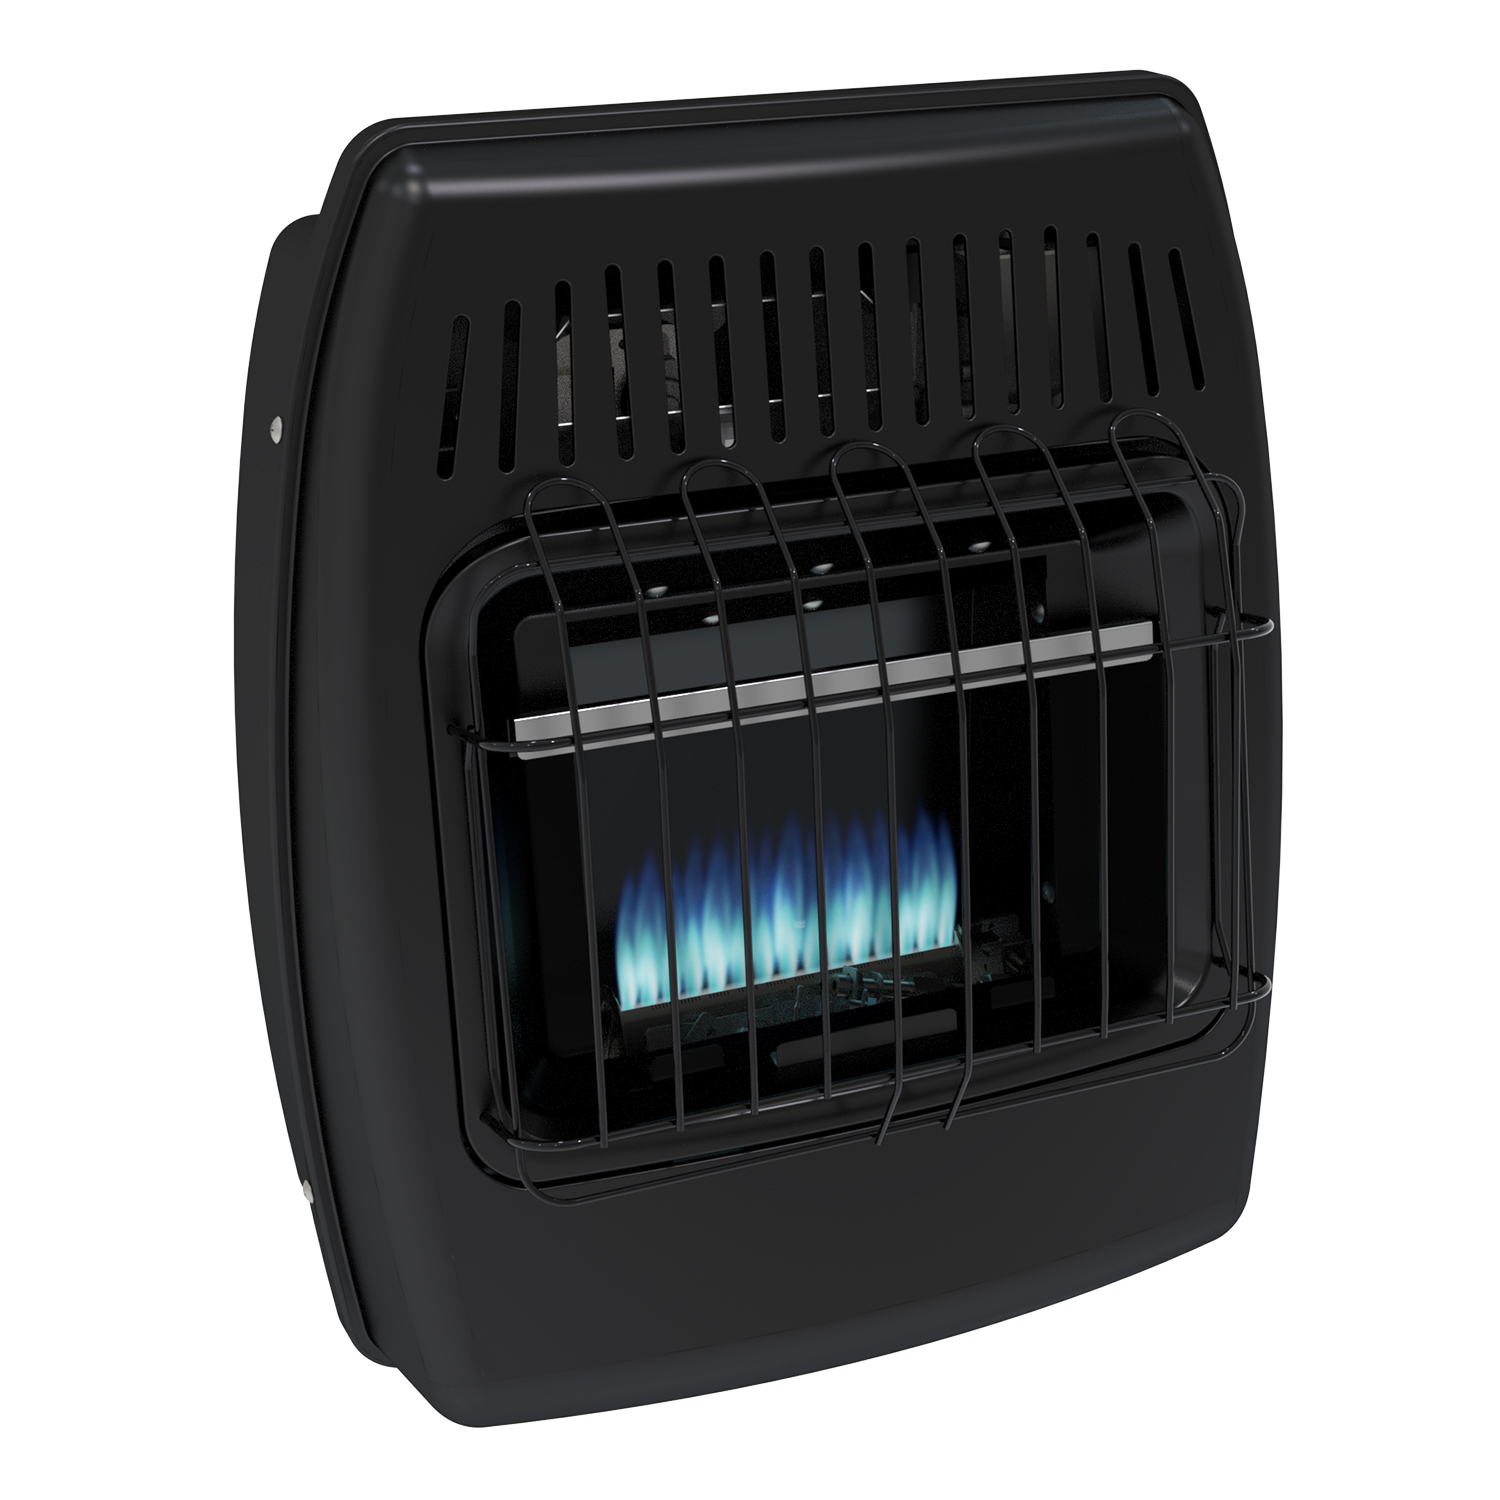 Dyna-Glo 10,000 BTU Liquid Propane Blue Flame Vent Free Ice House Heater